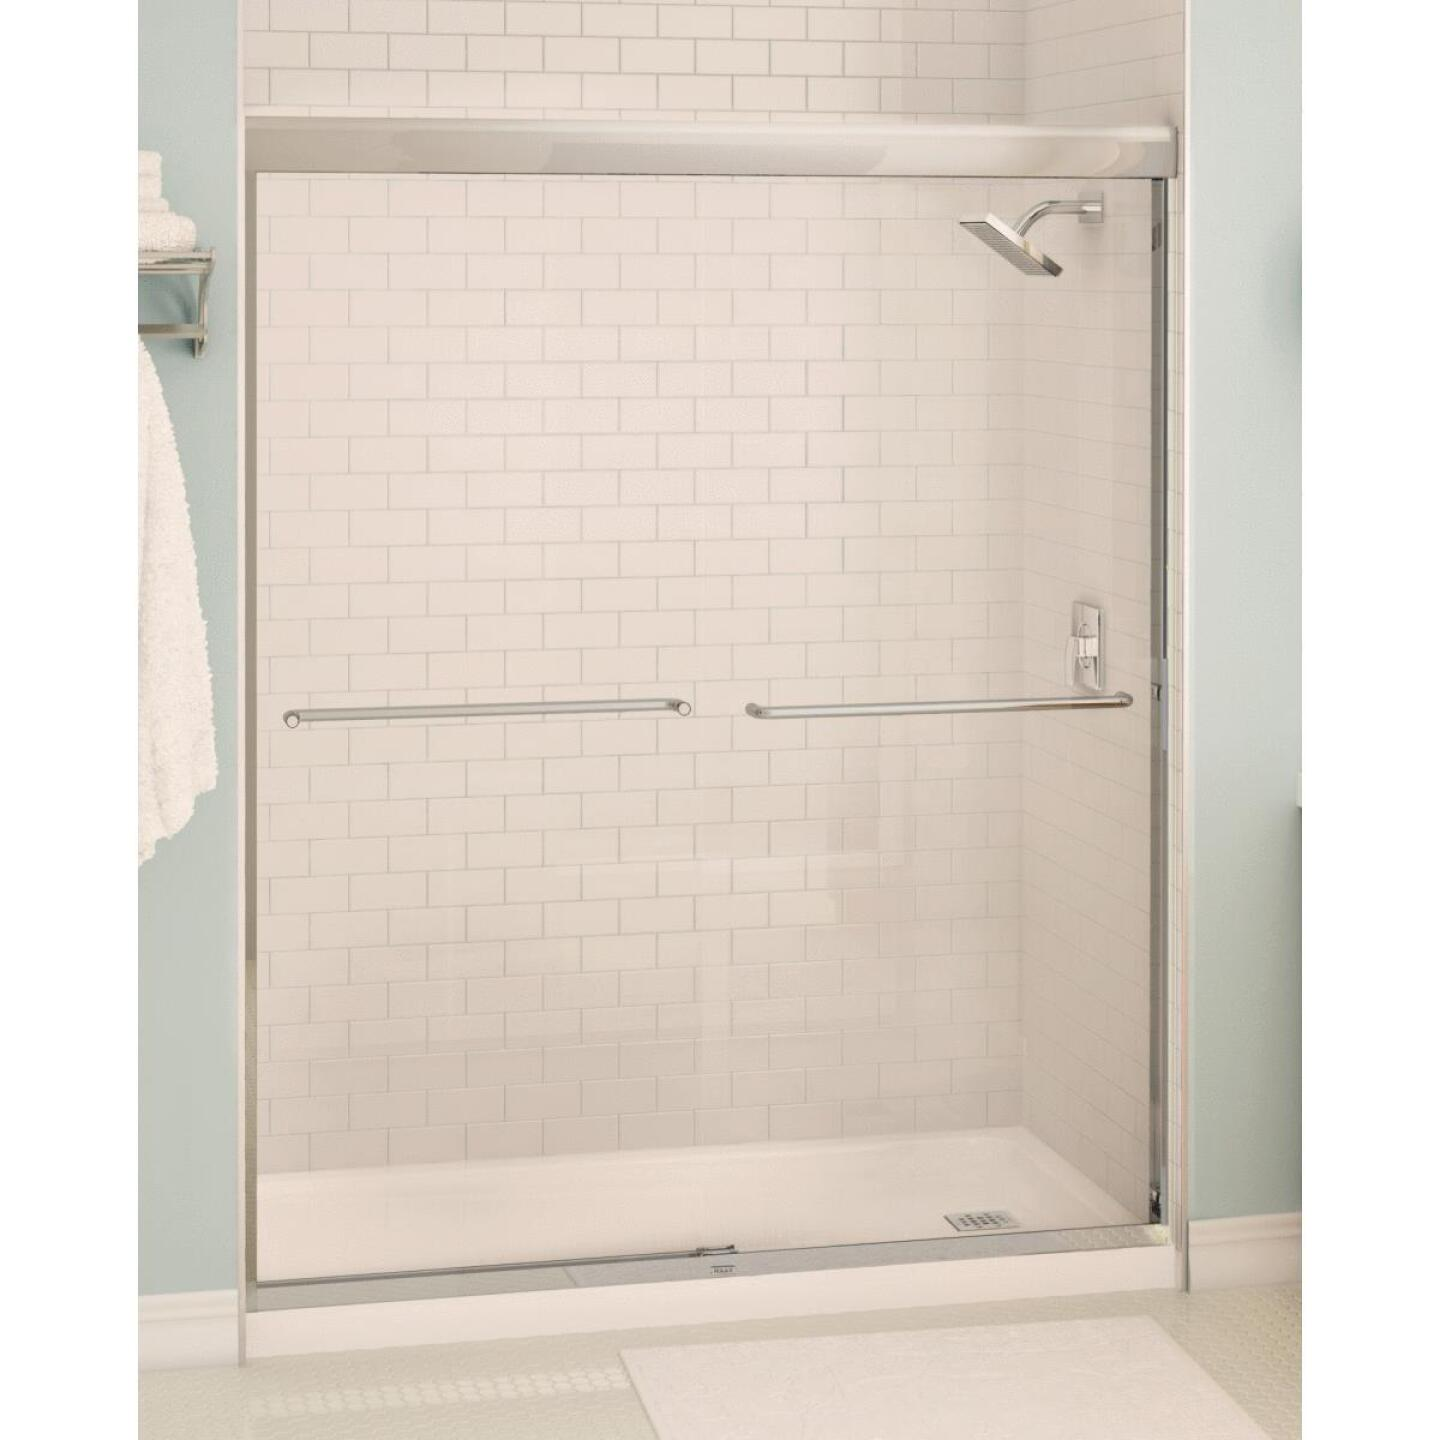 Maax Aura 59.5 In. W. X 71 In. H. Chrome Frameless Clear Glass Sliding Shower Door Image 1